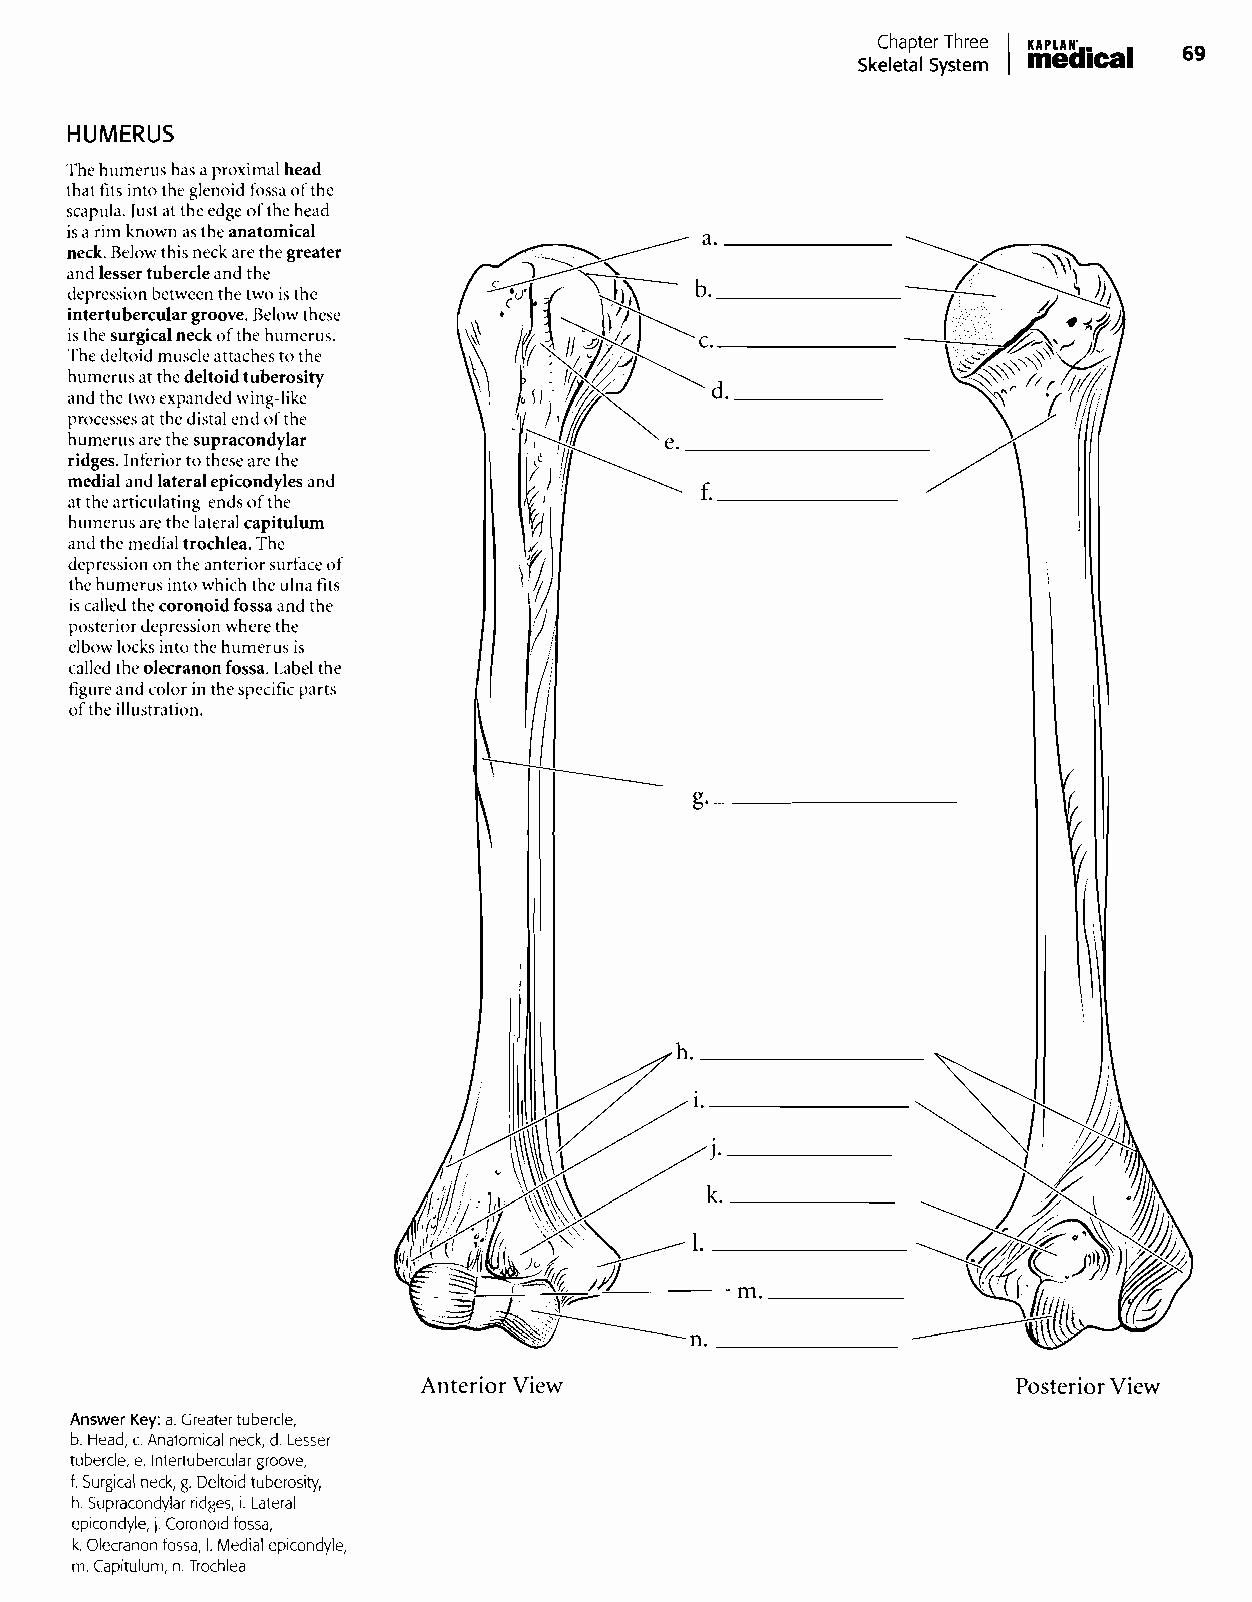 The Anatomy Coloring Book Best Of Kaplan Anatomy Coloring Book Pdf Boudli Pinterest In 2020 Anatomy Coloring Book Coloring Books Printable Coloring Book